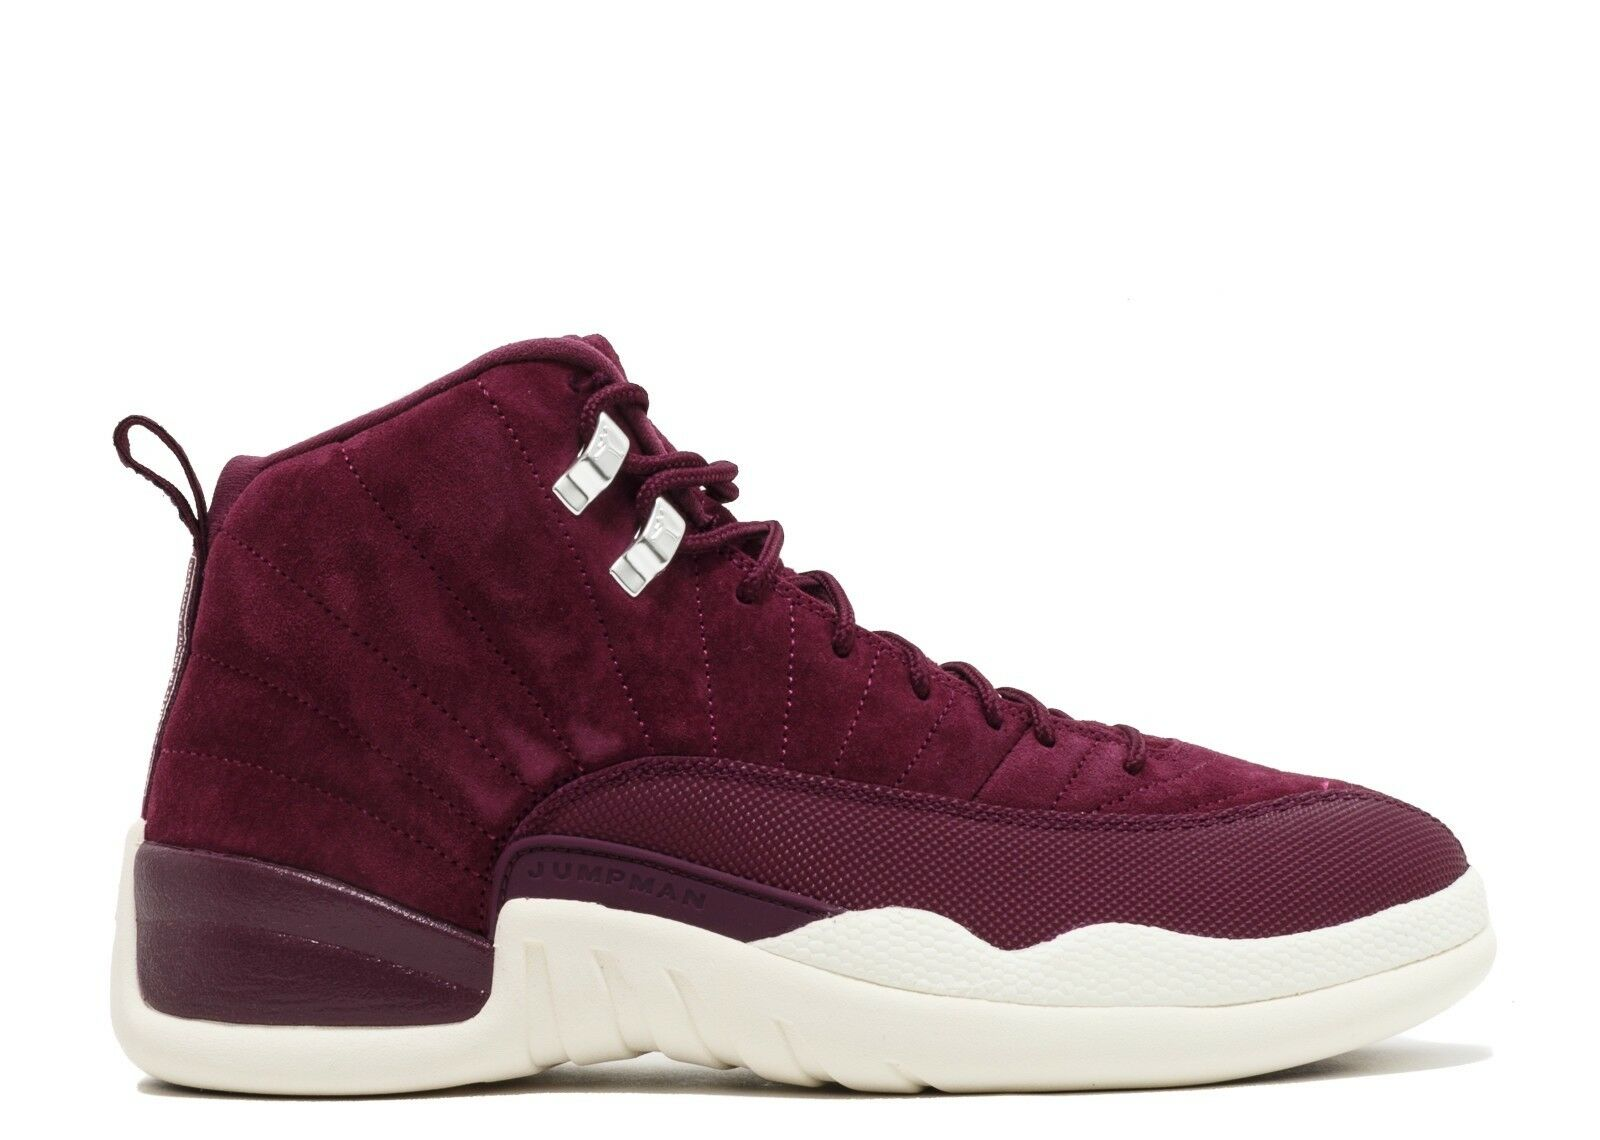 33604124574e AIR JORDAN RETRO BORDEAUX 12 npfpjy3120-Athletic Shoes